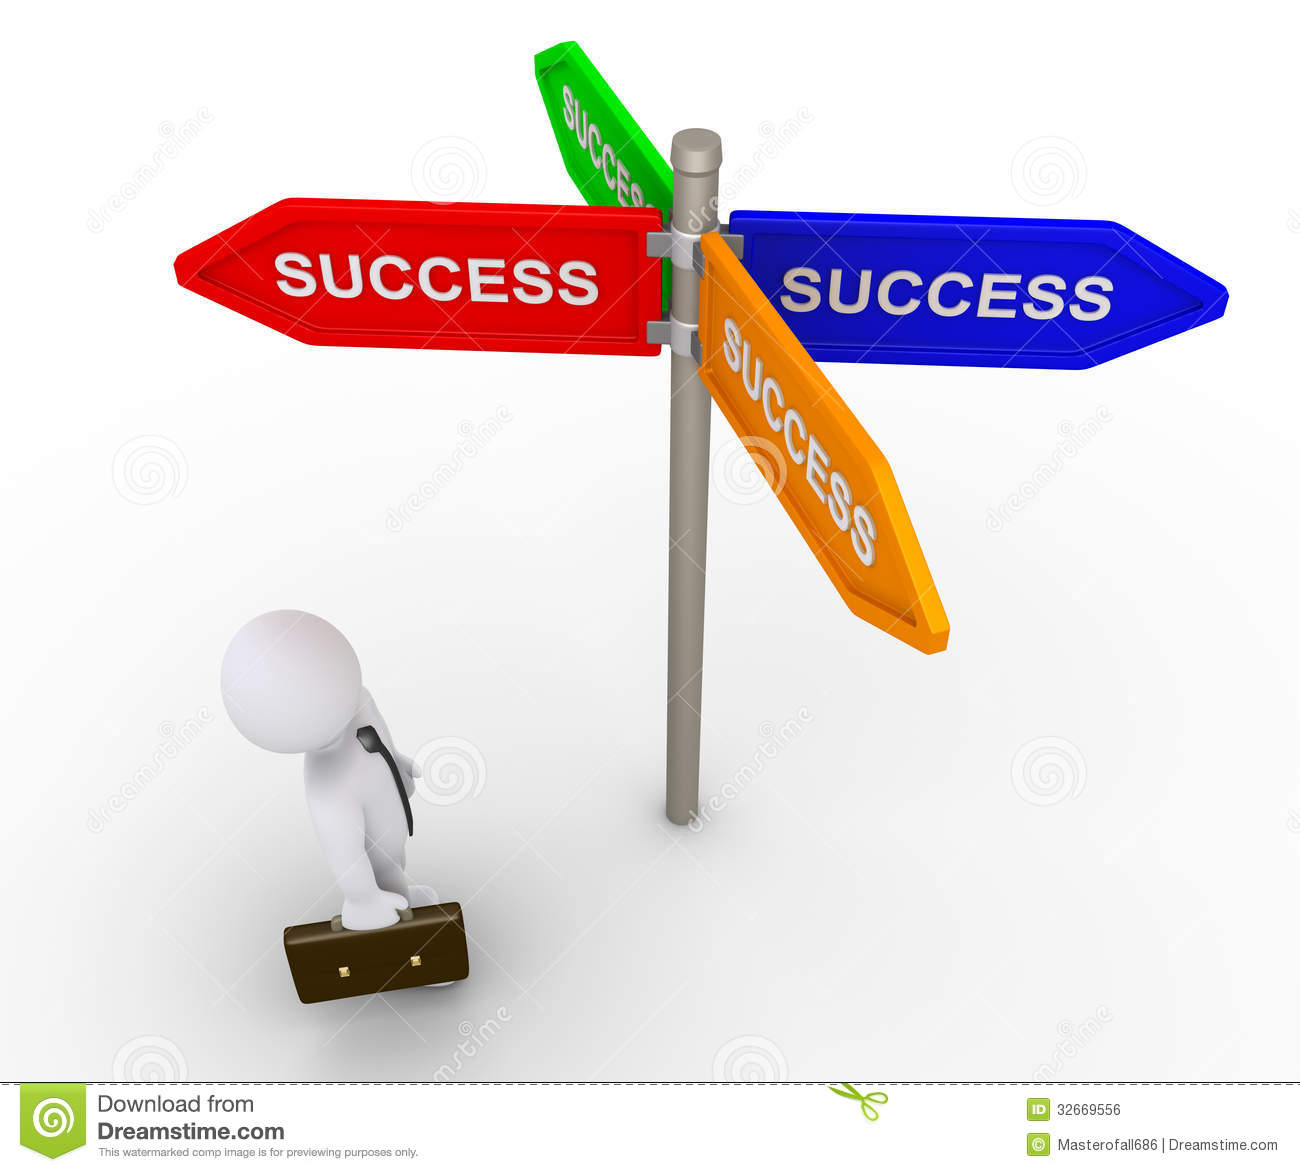 A path to success